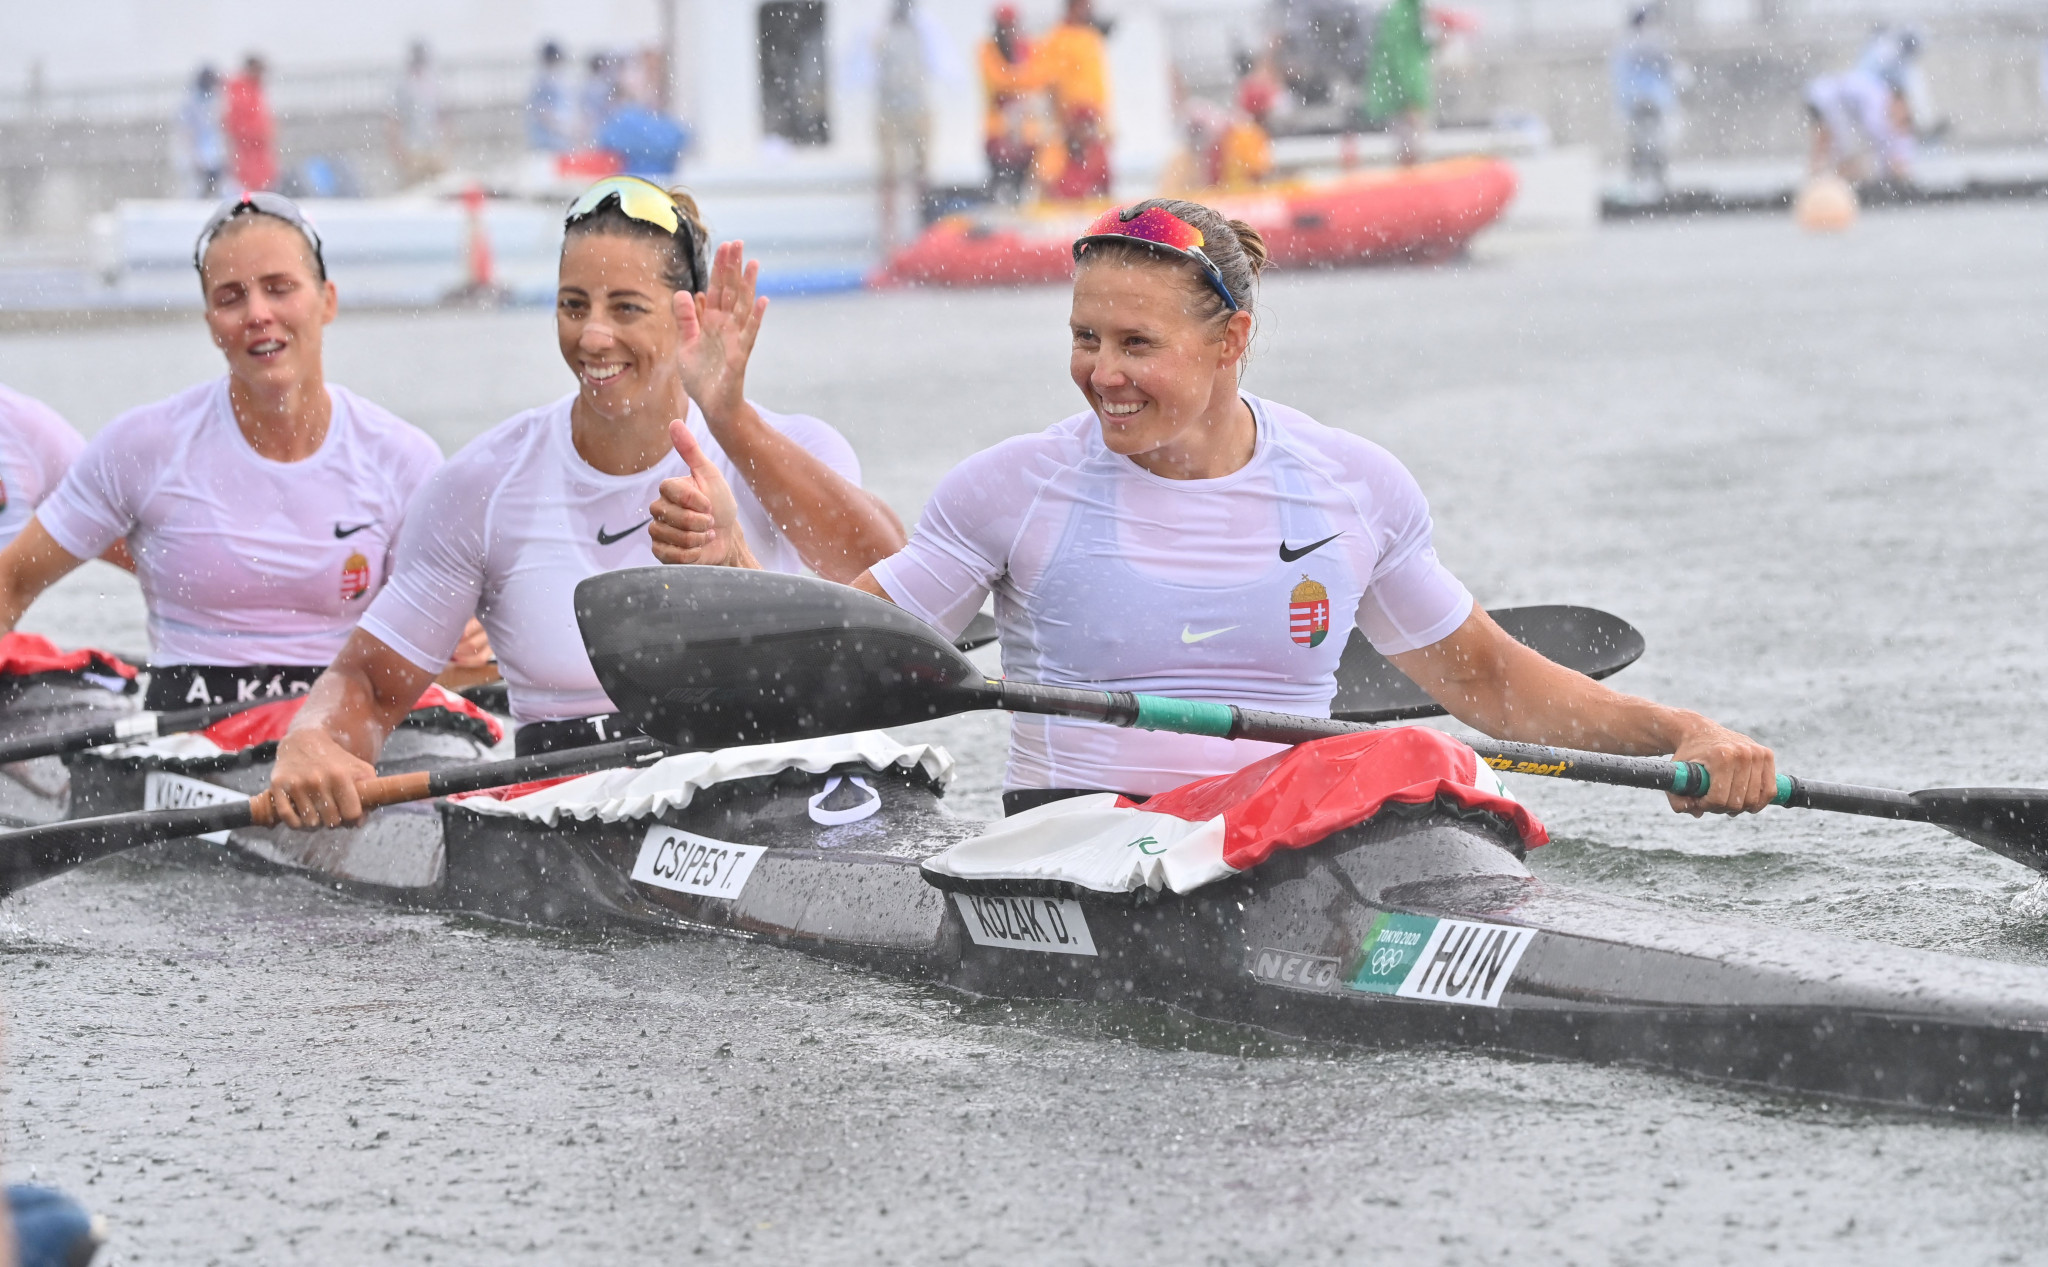 Hungarian Olympic champions on course for success at ICF Canoe Sprint World Championships